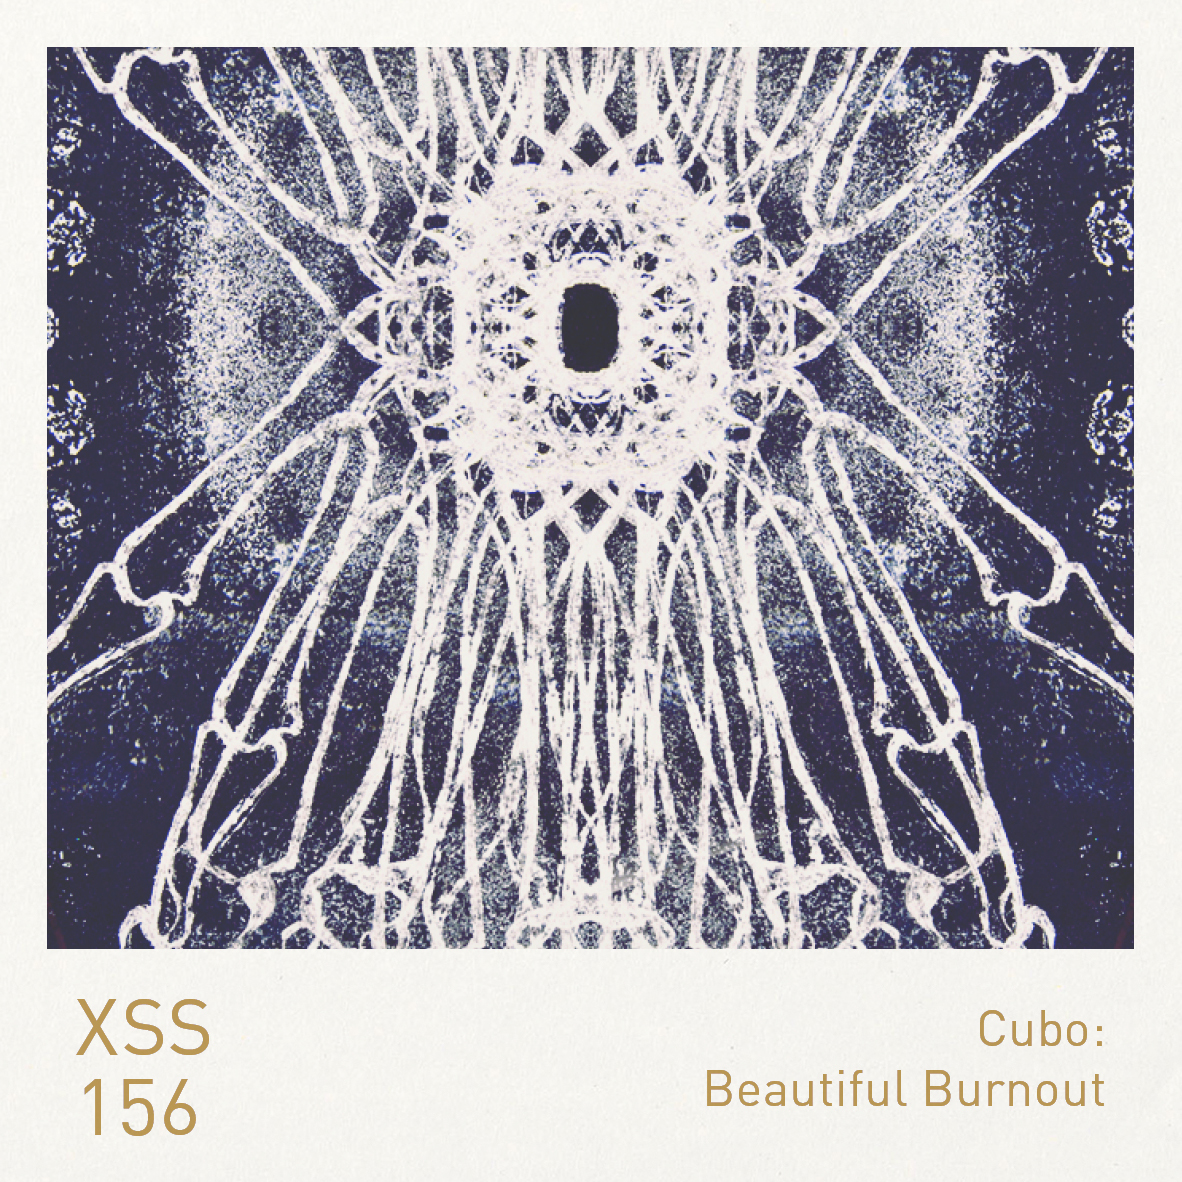 XSS156 | Cubo | Beautiful Burnout